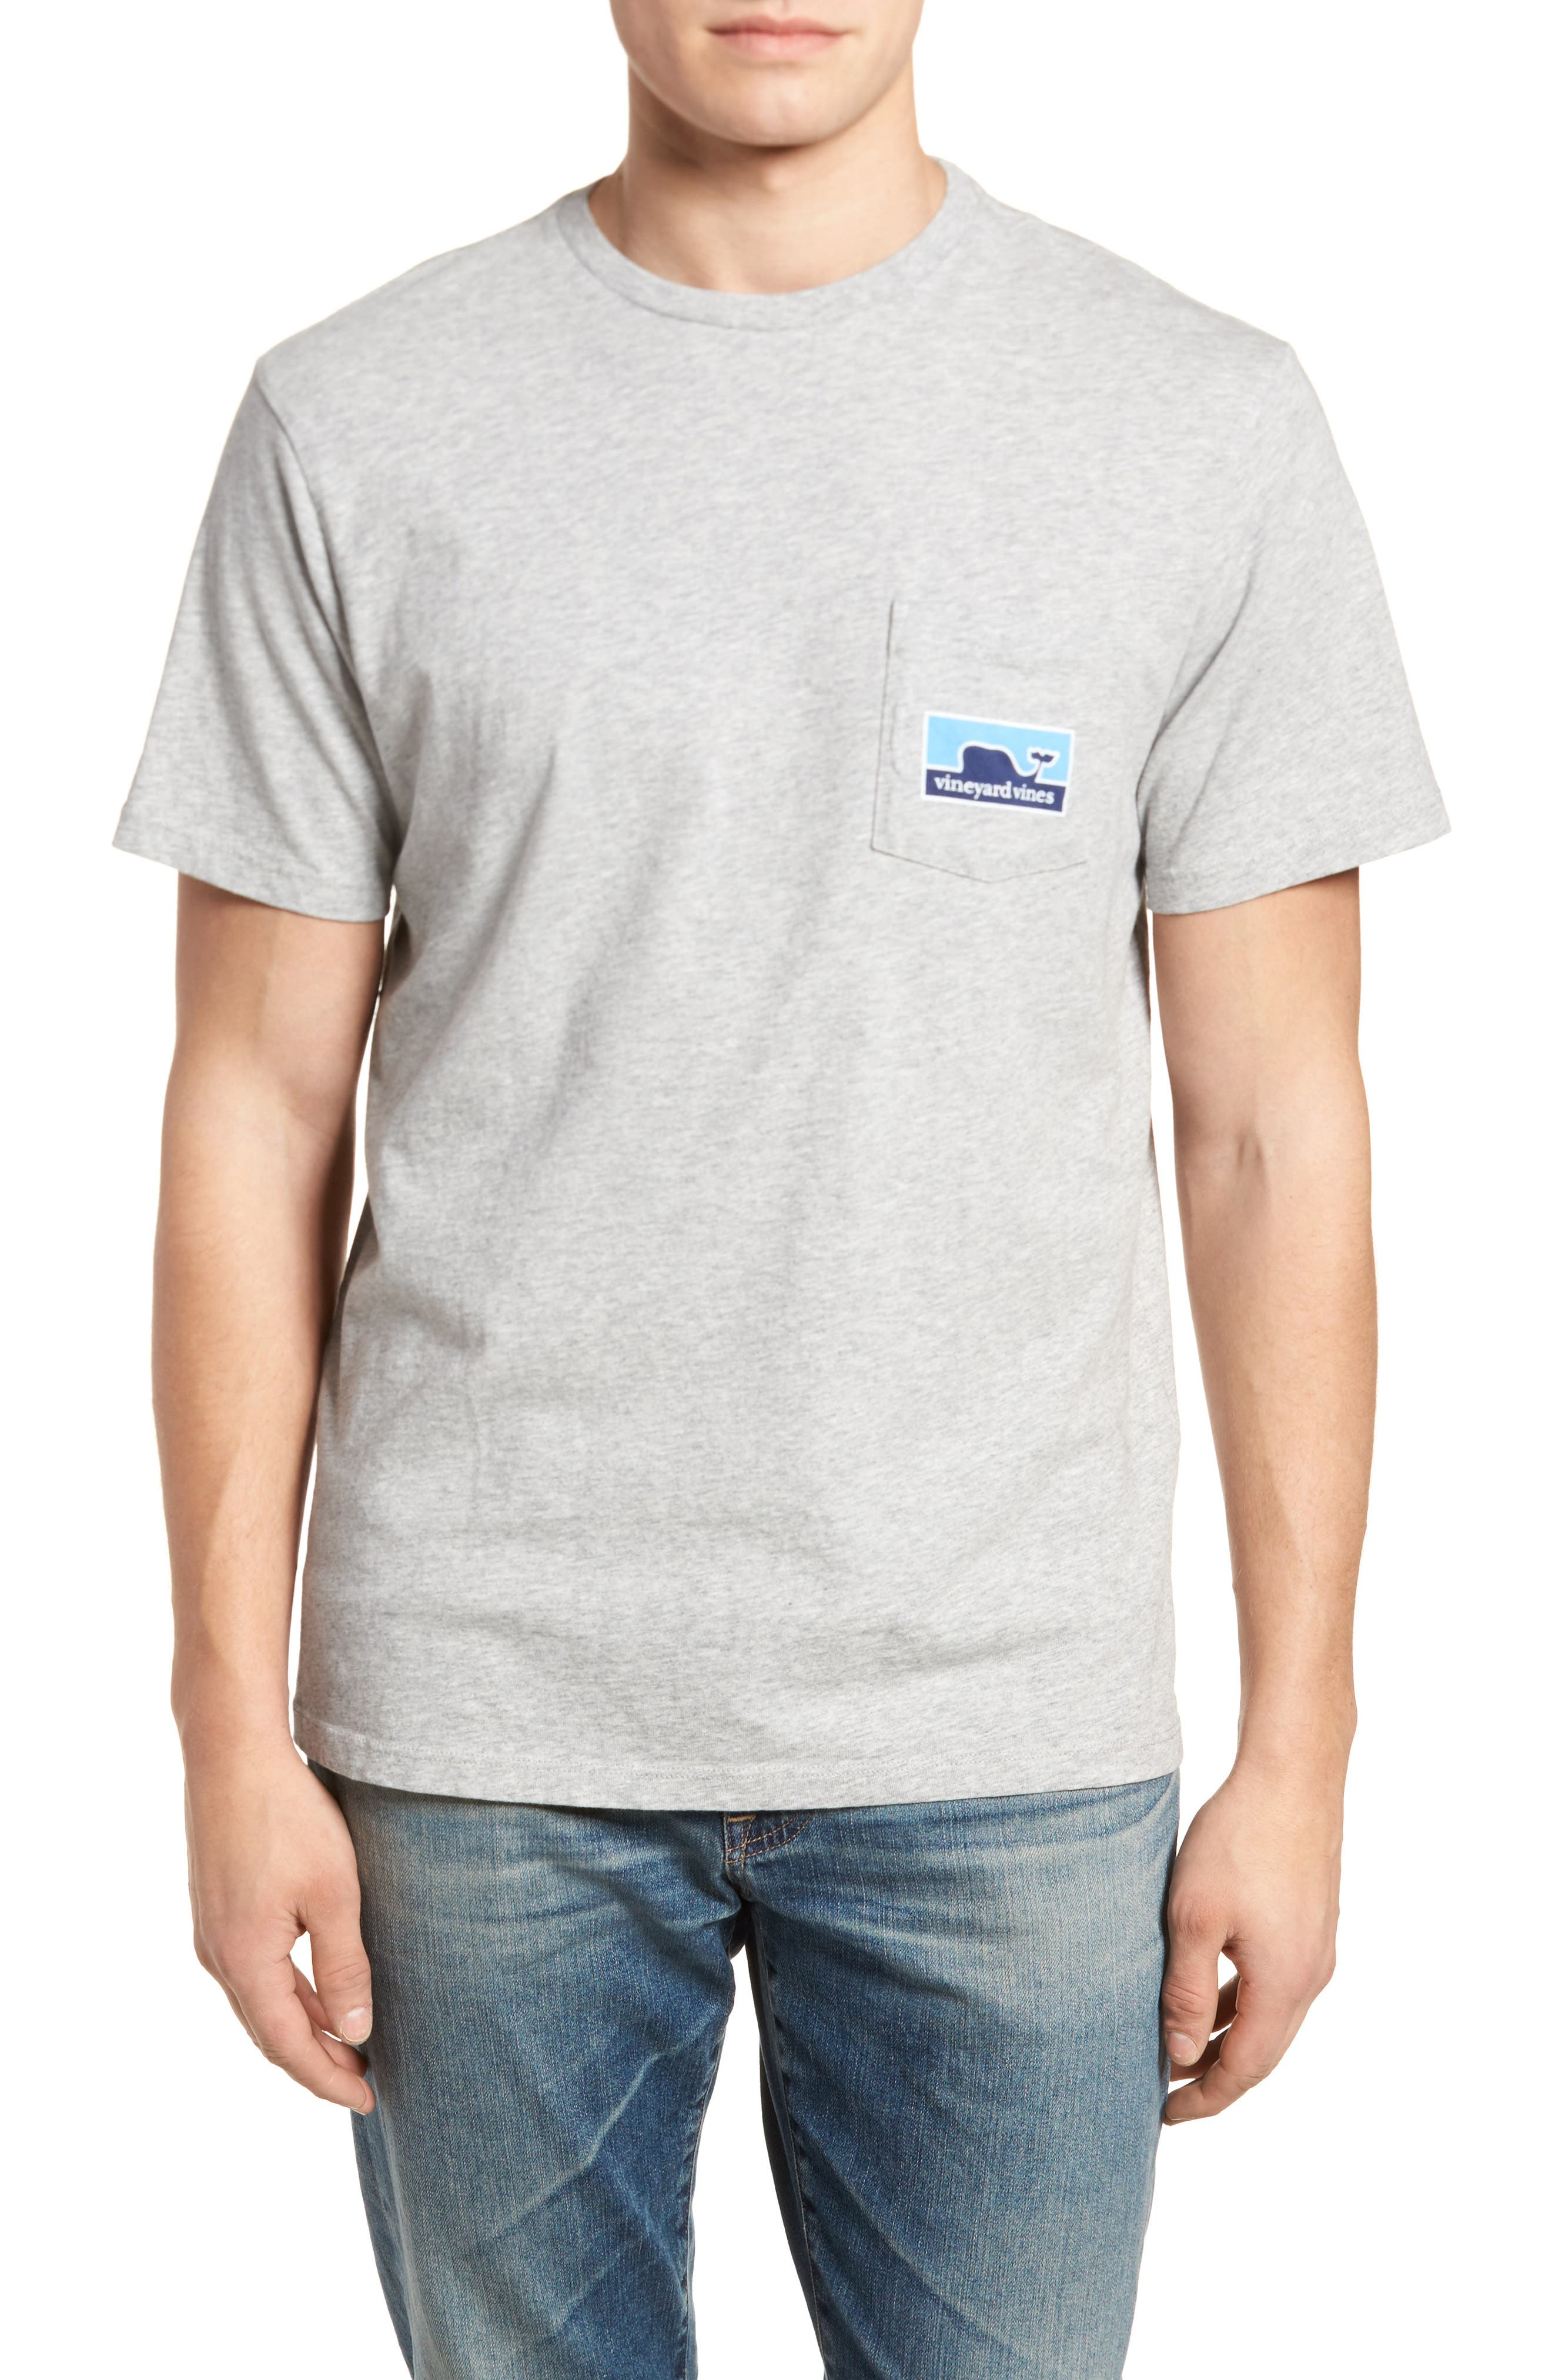 VINEYARD VINES Whaleline Graphic Pocket T-Shirt, Main, color, 039